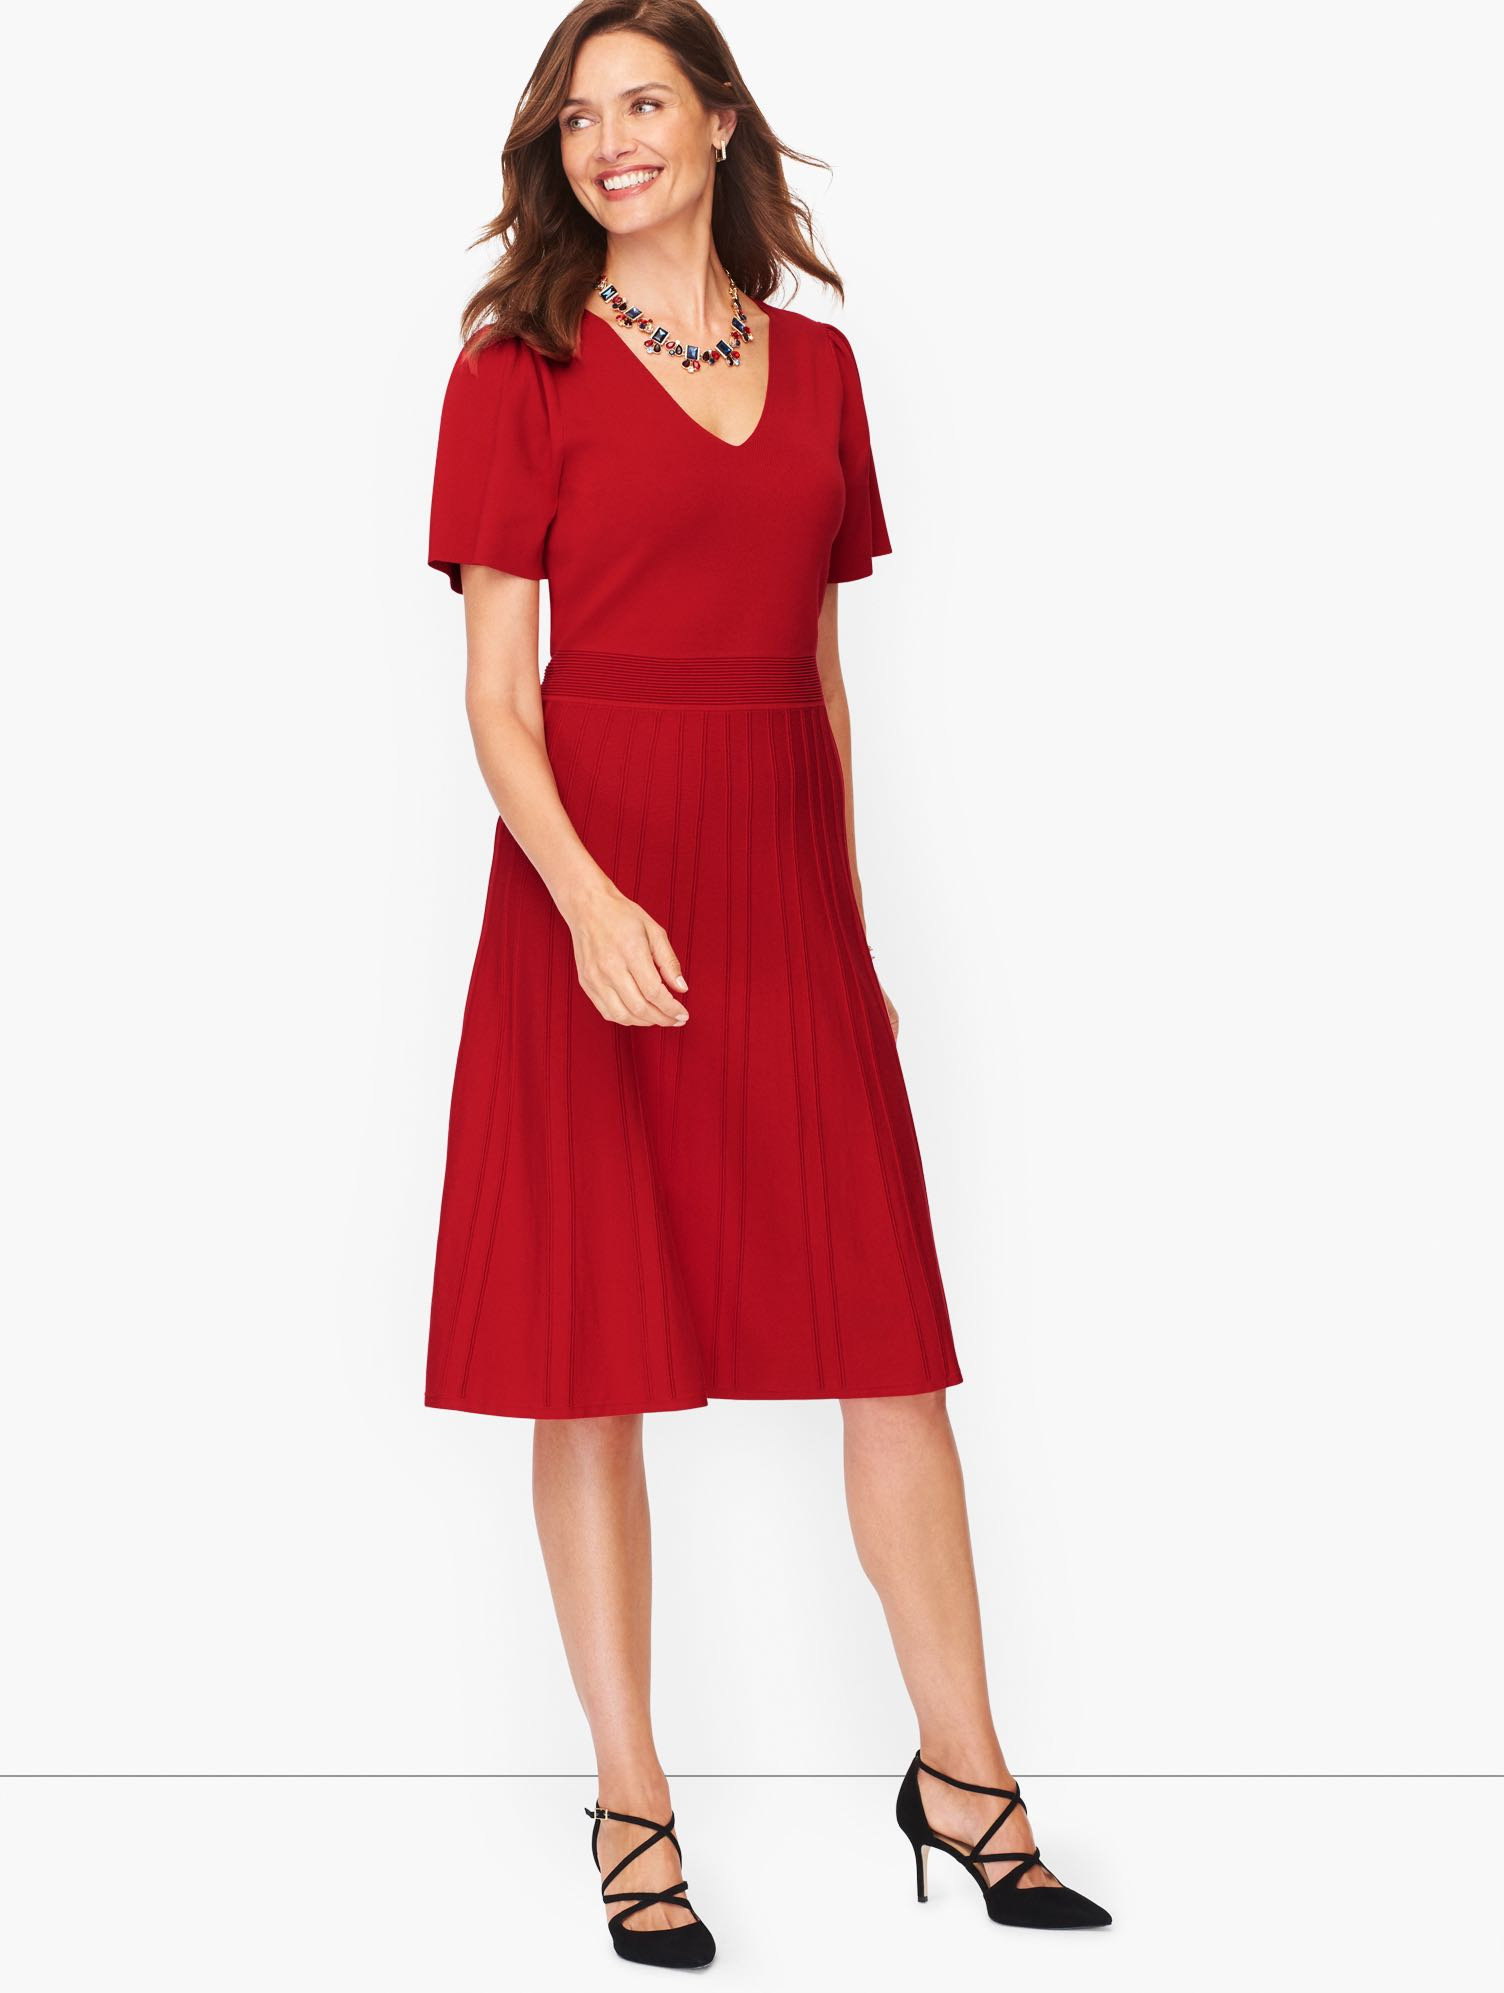 Vintage Style Dresses | Vintage Inspired Dresses Flutter Sleeve Fit  Flare Dress - Red - 3X Talbots $169.00 AT vintagedancer.com